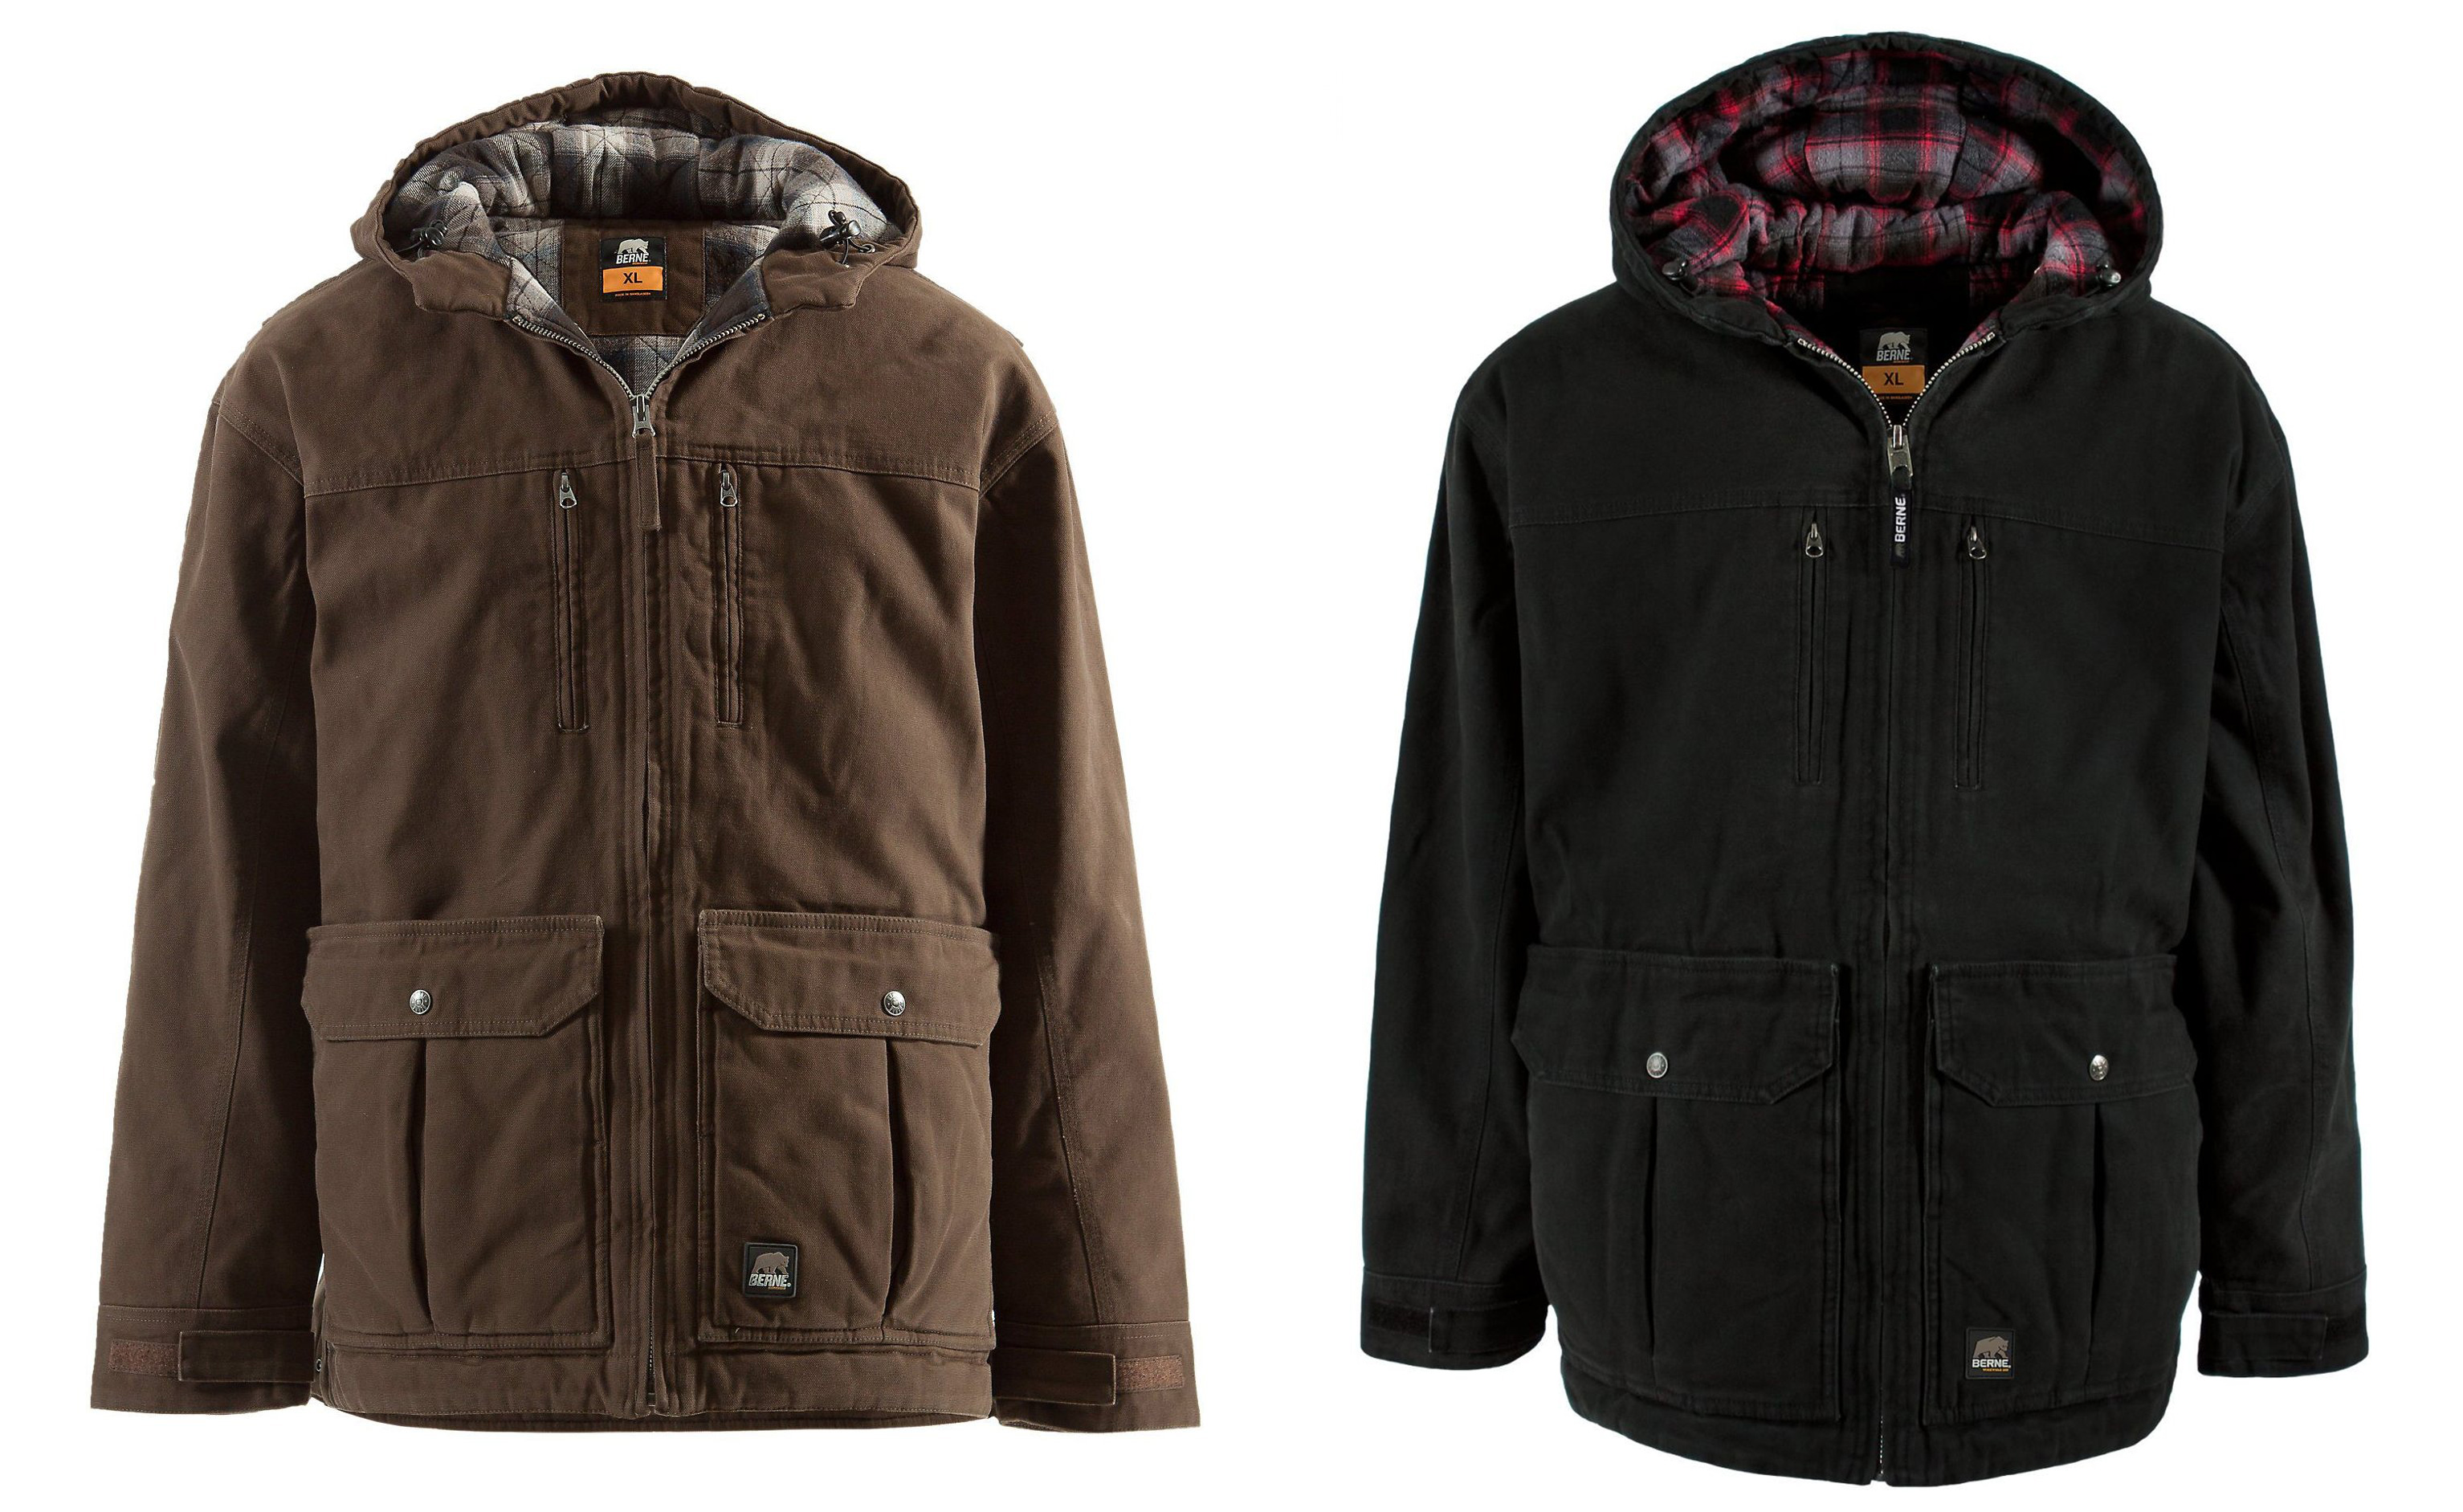 Berne Men's Concealed Carry Echo One One Jacket